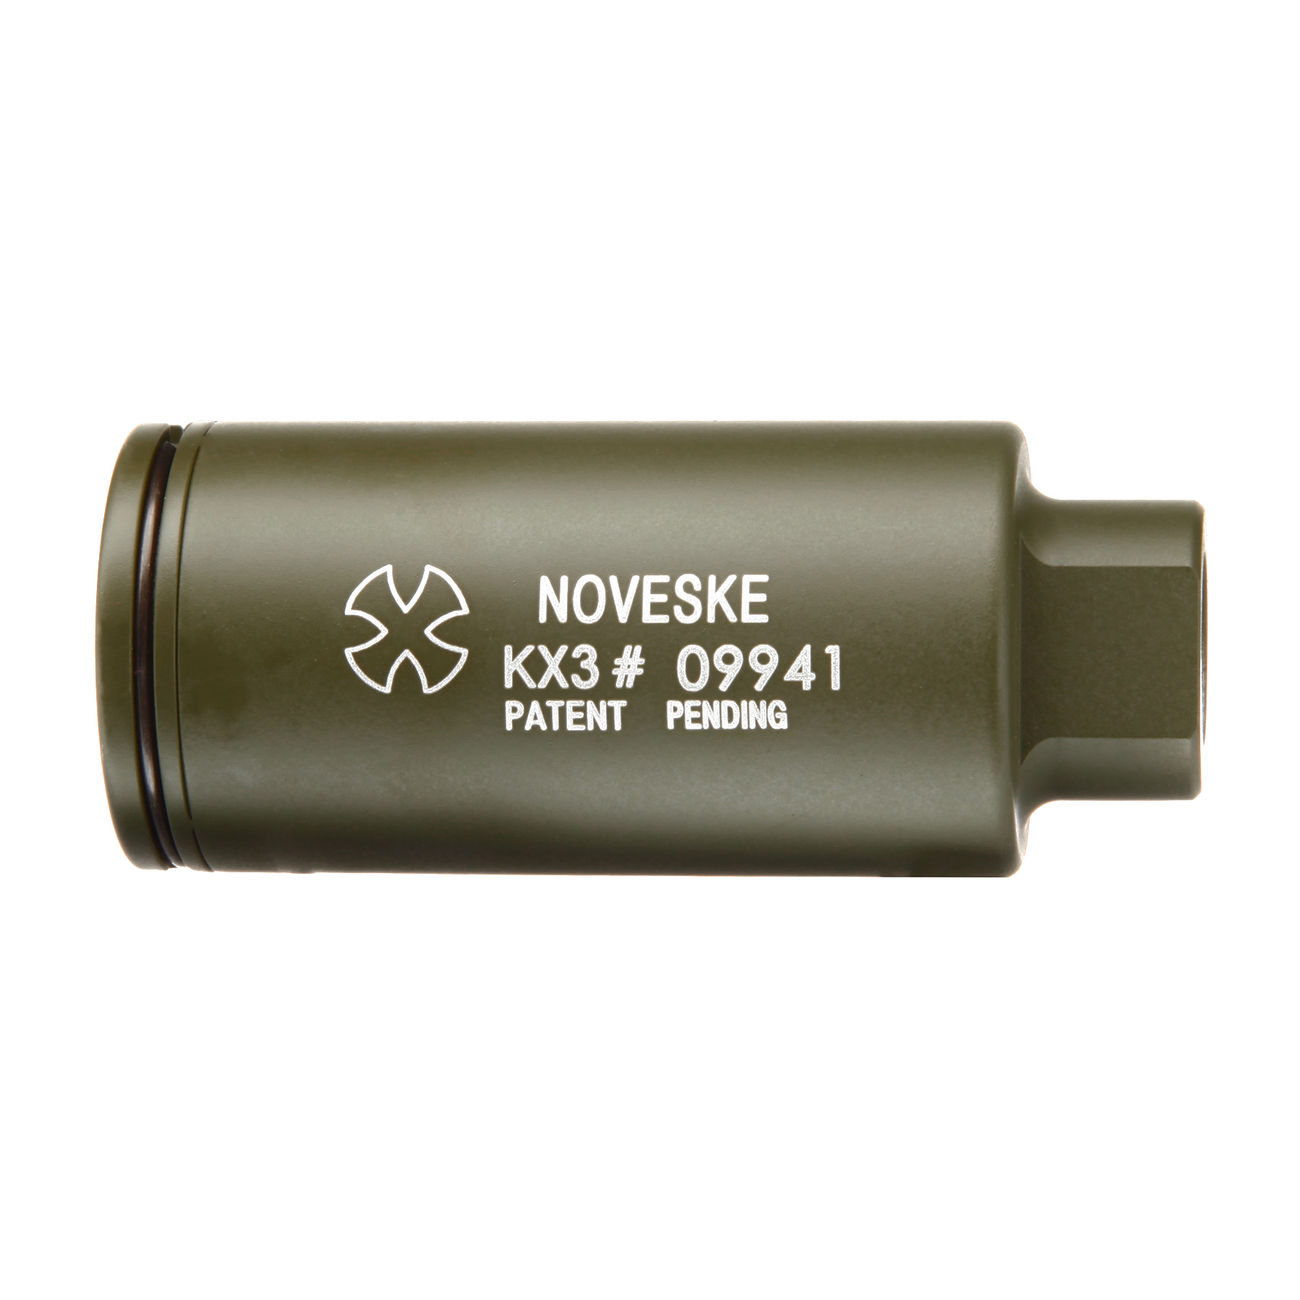 MadBull / Noveske KX3 Aluminium Amplifier Flash-Hider oliv 14mm- 2